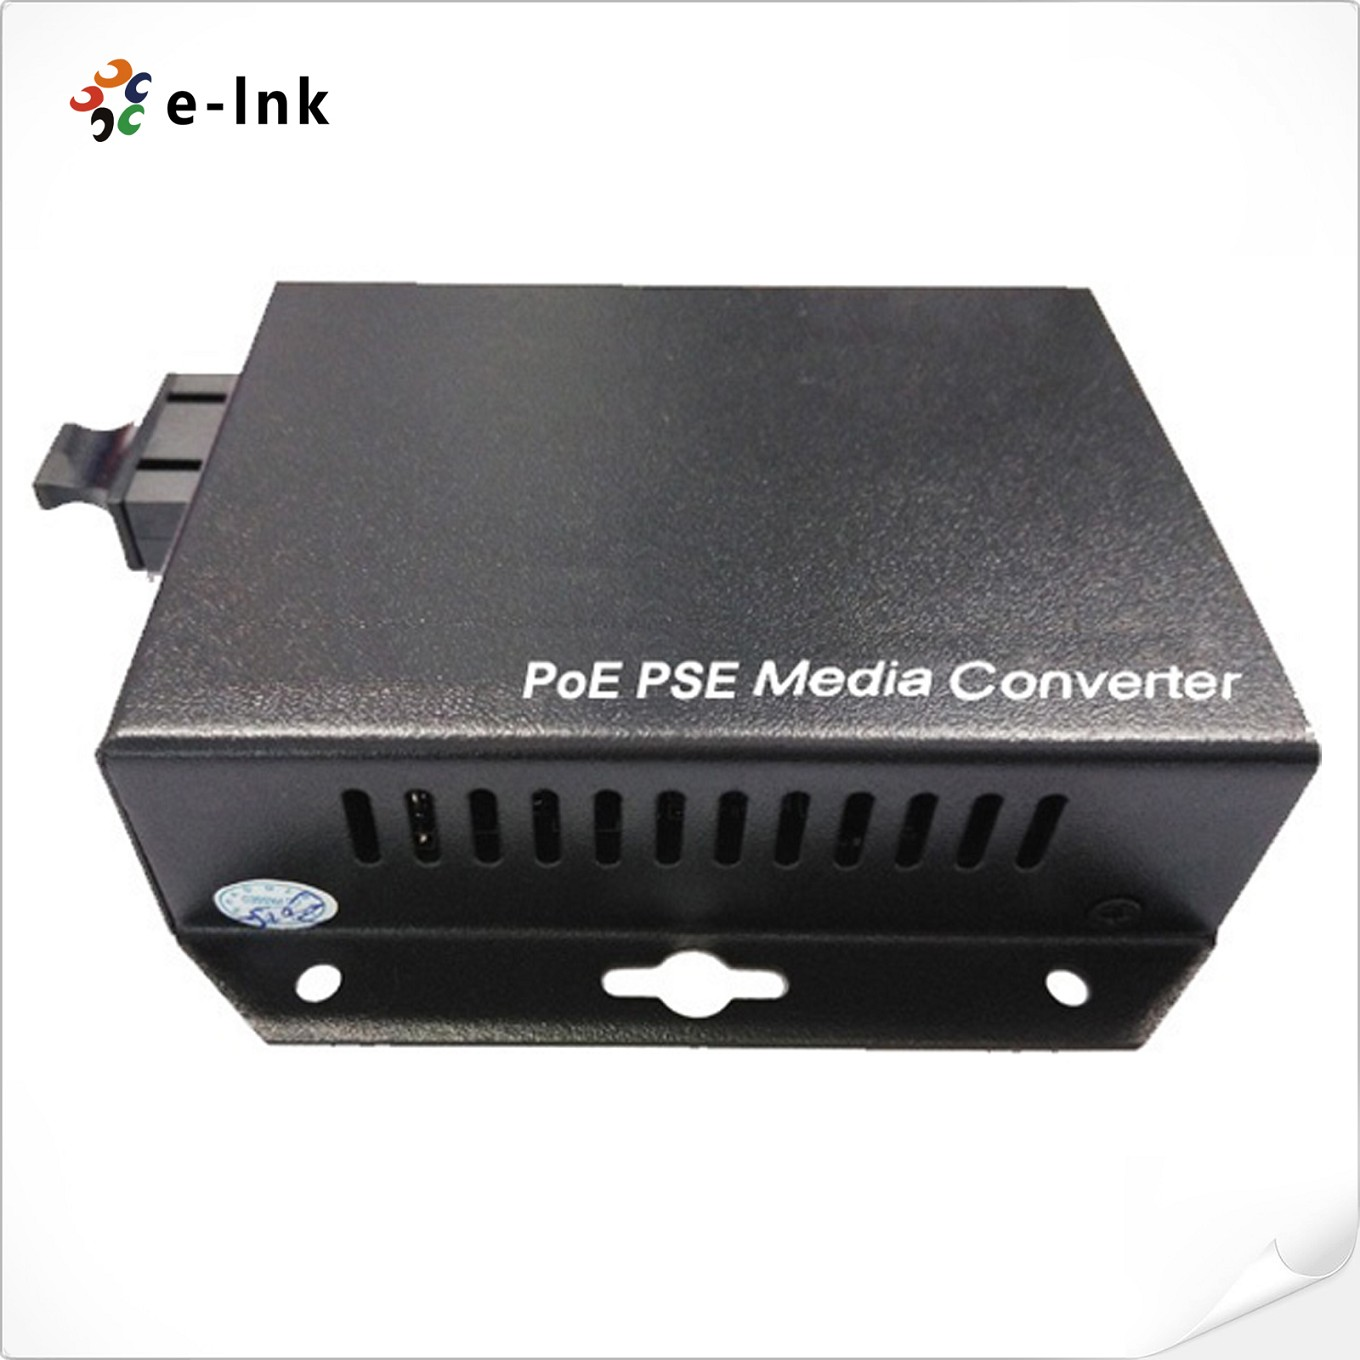 Wall-Mounted 10/100/1000Mbps Gigabit PoE-PSE Fiber Media Converter